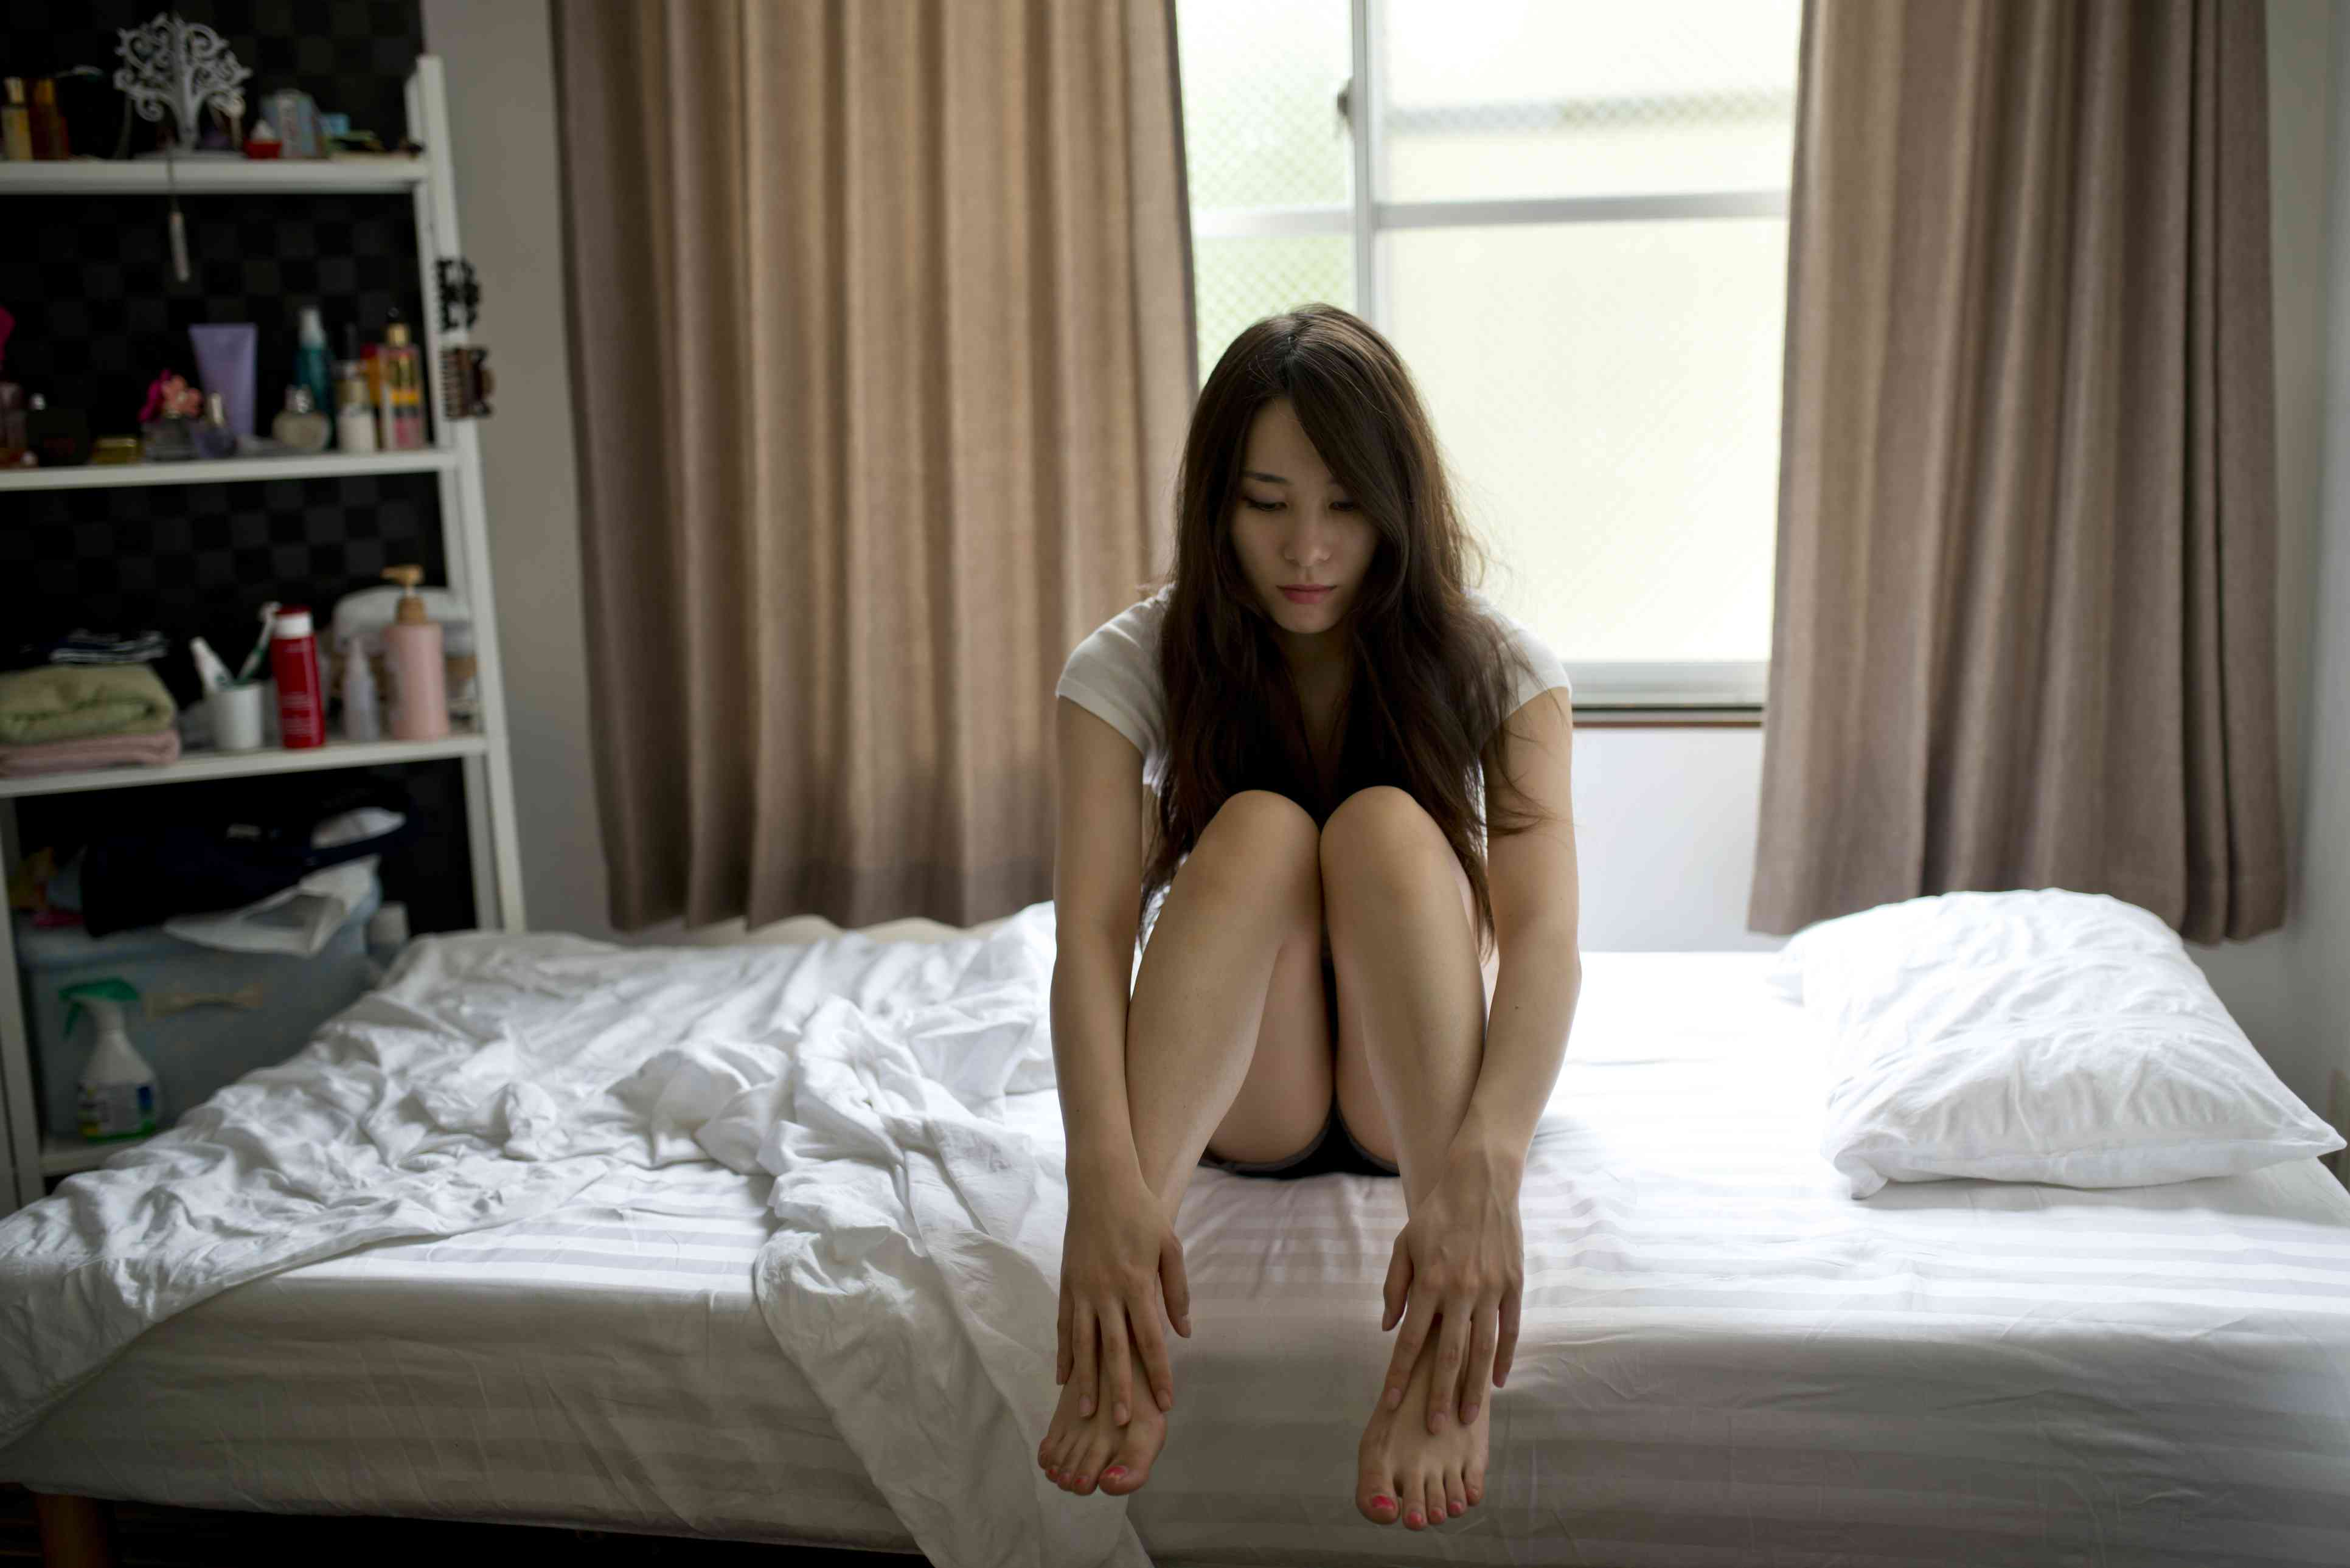 Woman sits on her bed looking at the floor